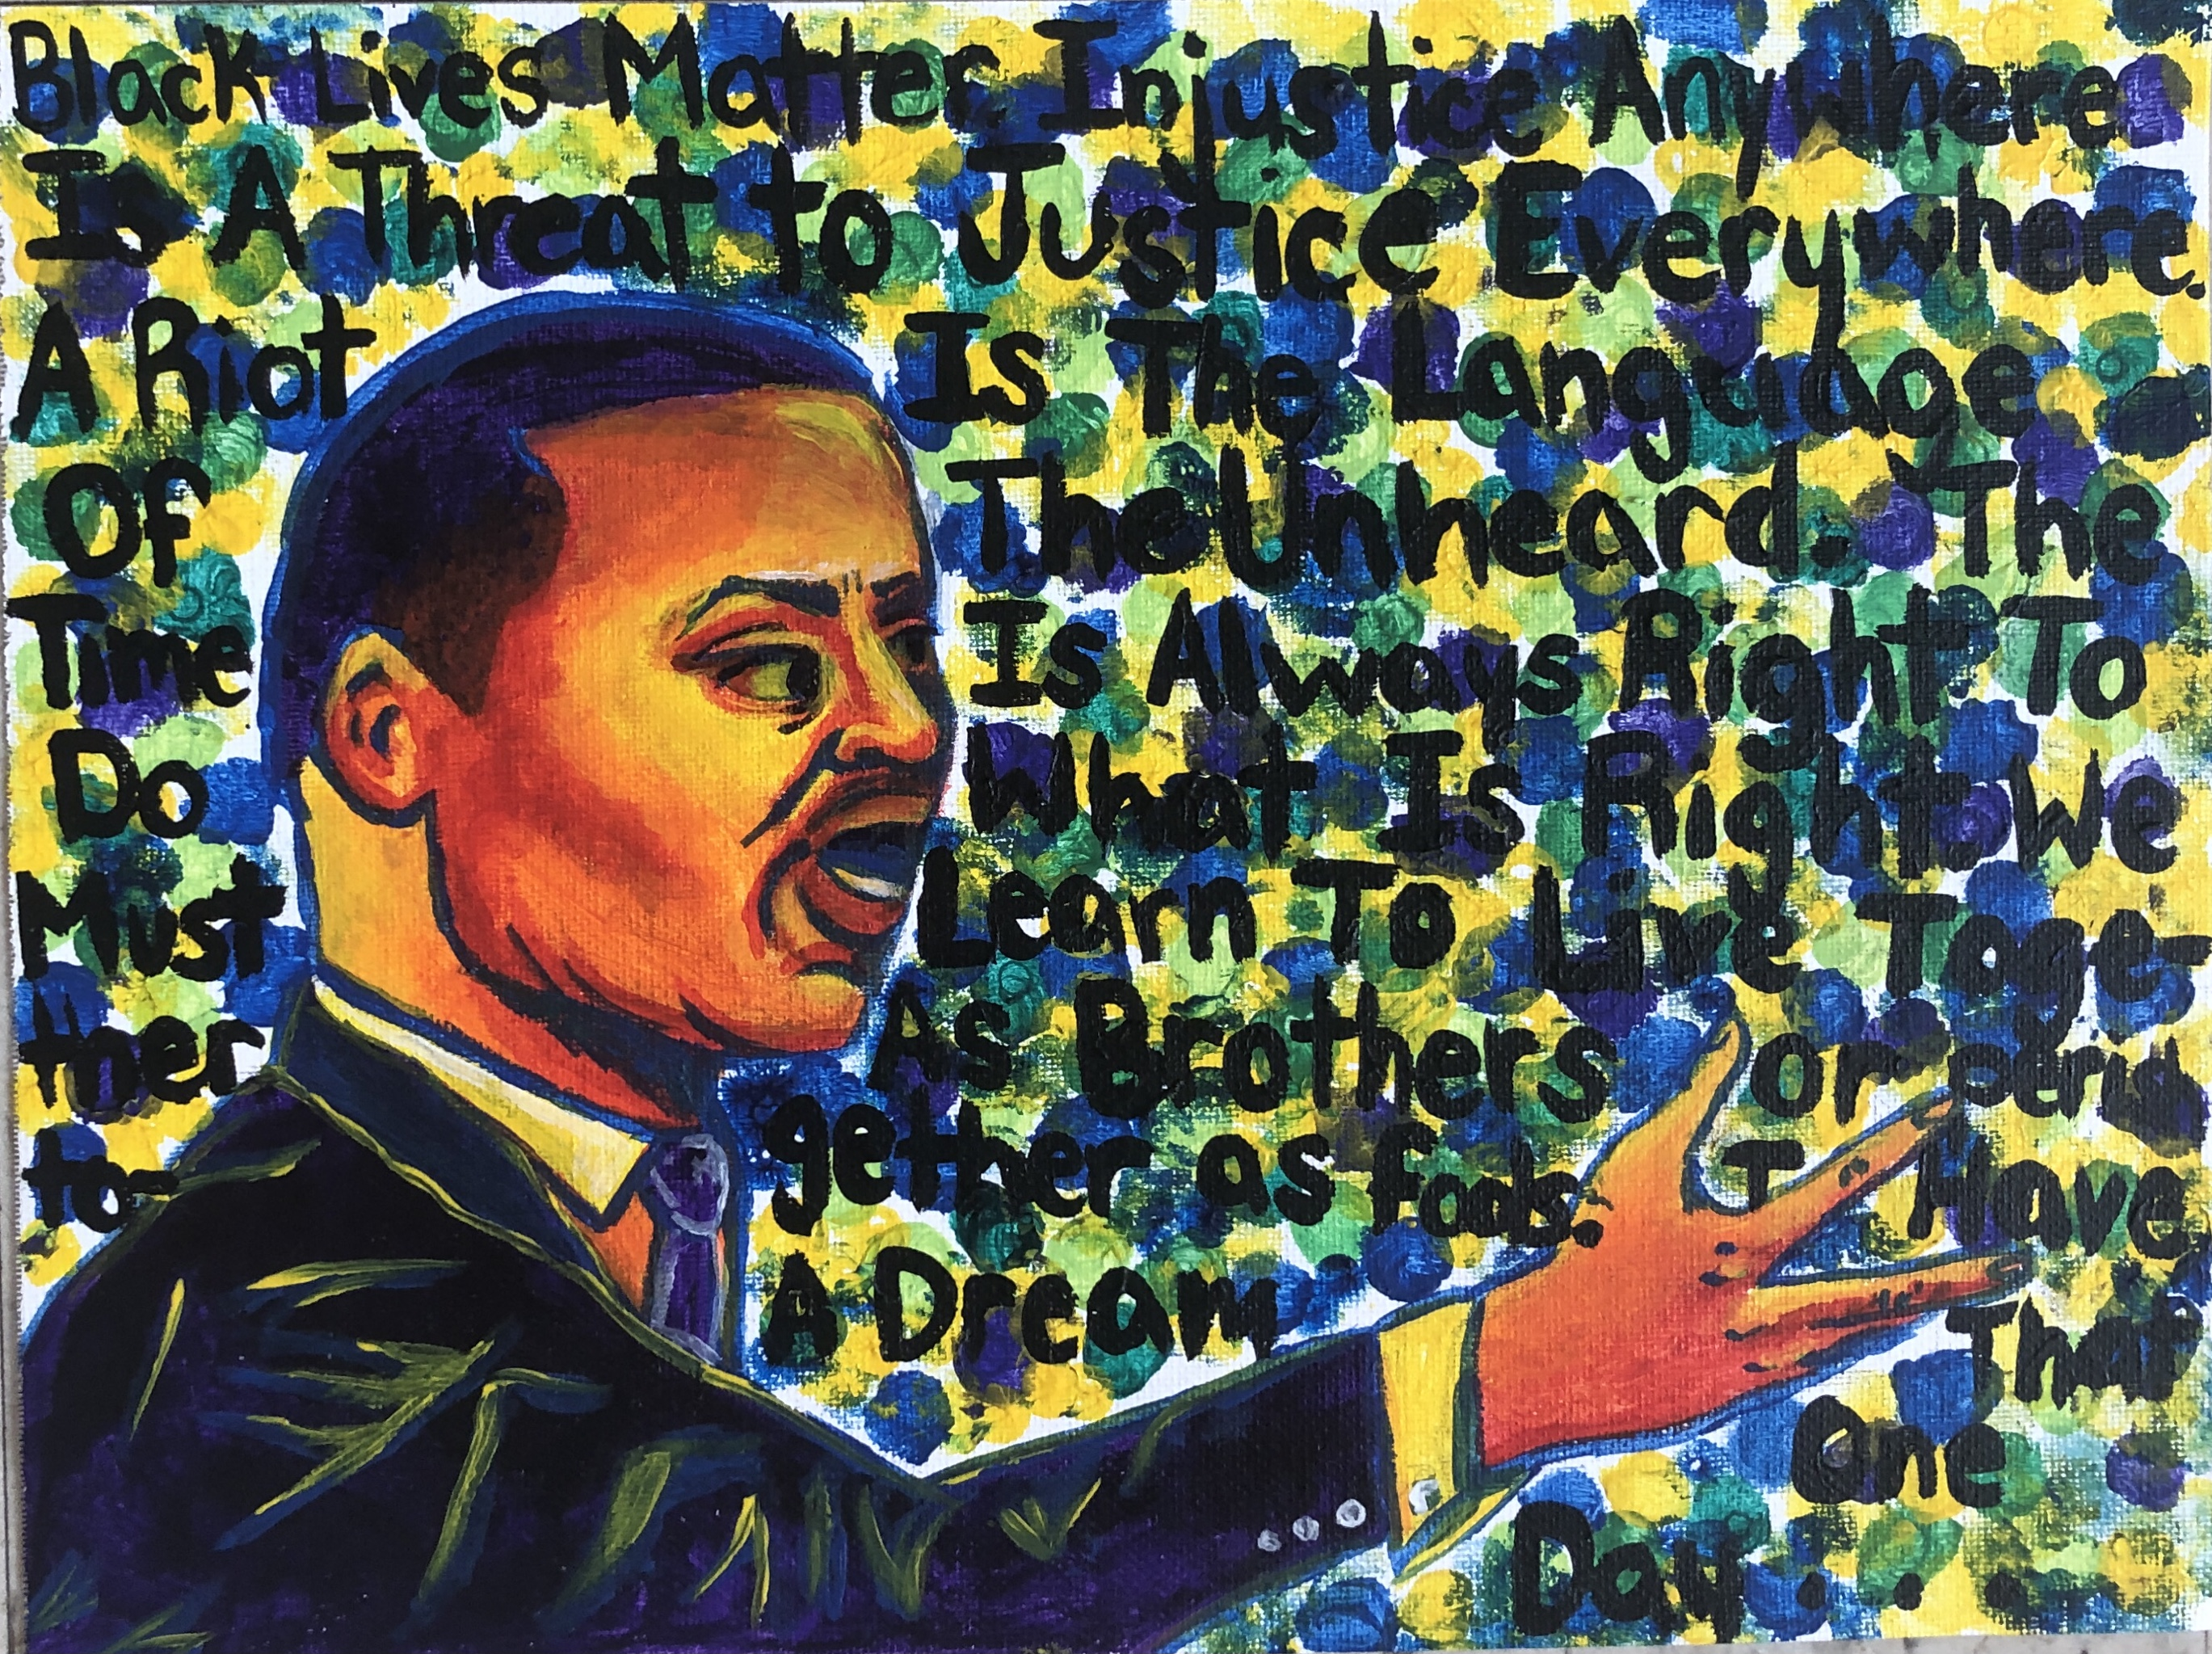 """Hand created image of Martin Luther King, Jr. orating with colorful background and text: """"Black Lives Matters Injustice Anywhere is a Threat To Justice Everywhere. A Riot is the Language of the Unheard.  The Time is Always Right to do What is Right. We Must Learn to Live Together as Brothers or Perish Together as Fools.  I Have a Dream that One Day..."""""""